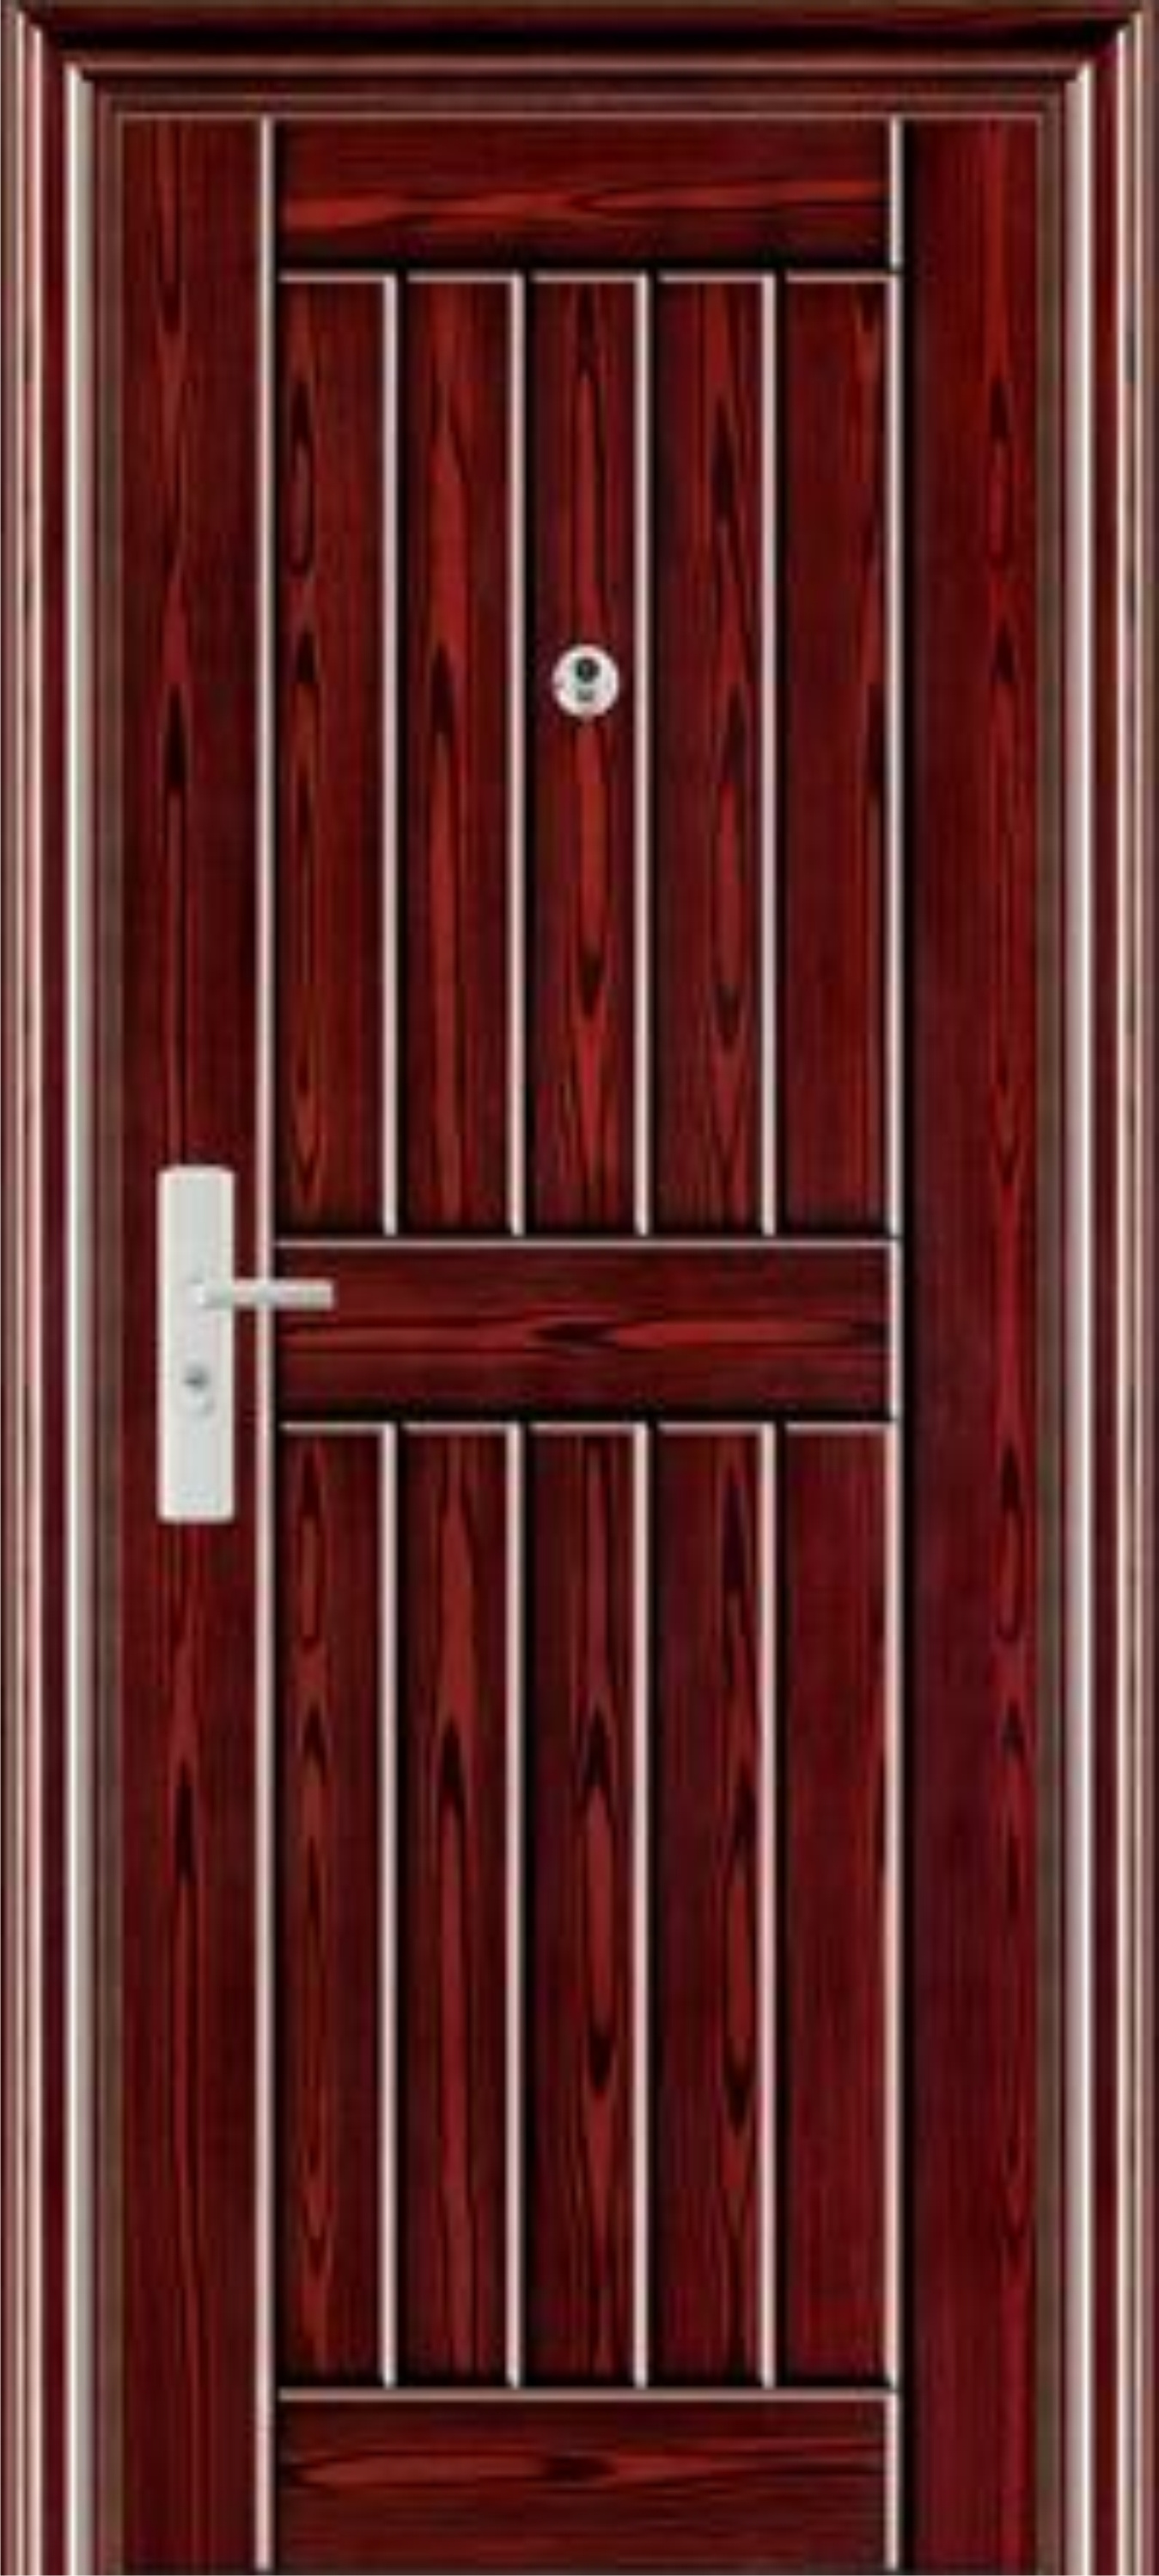 Single Steel Doors Pionare Enterprises Ltd